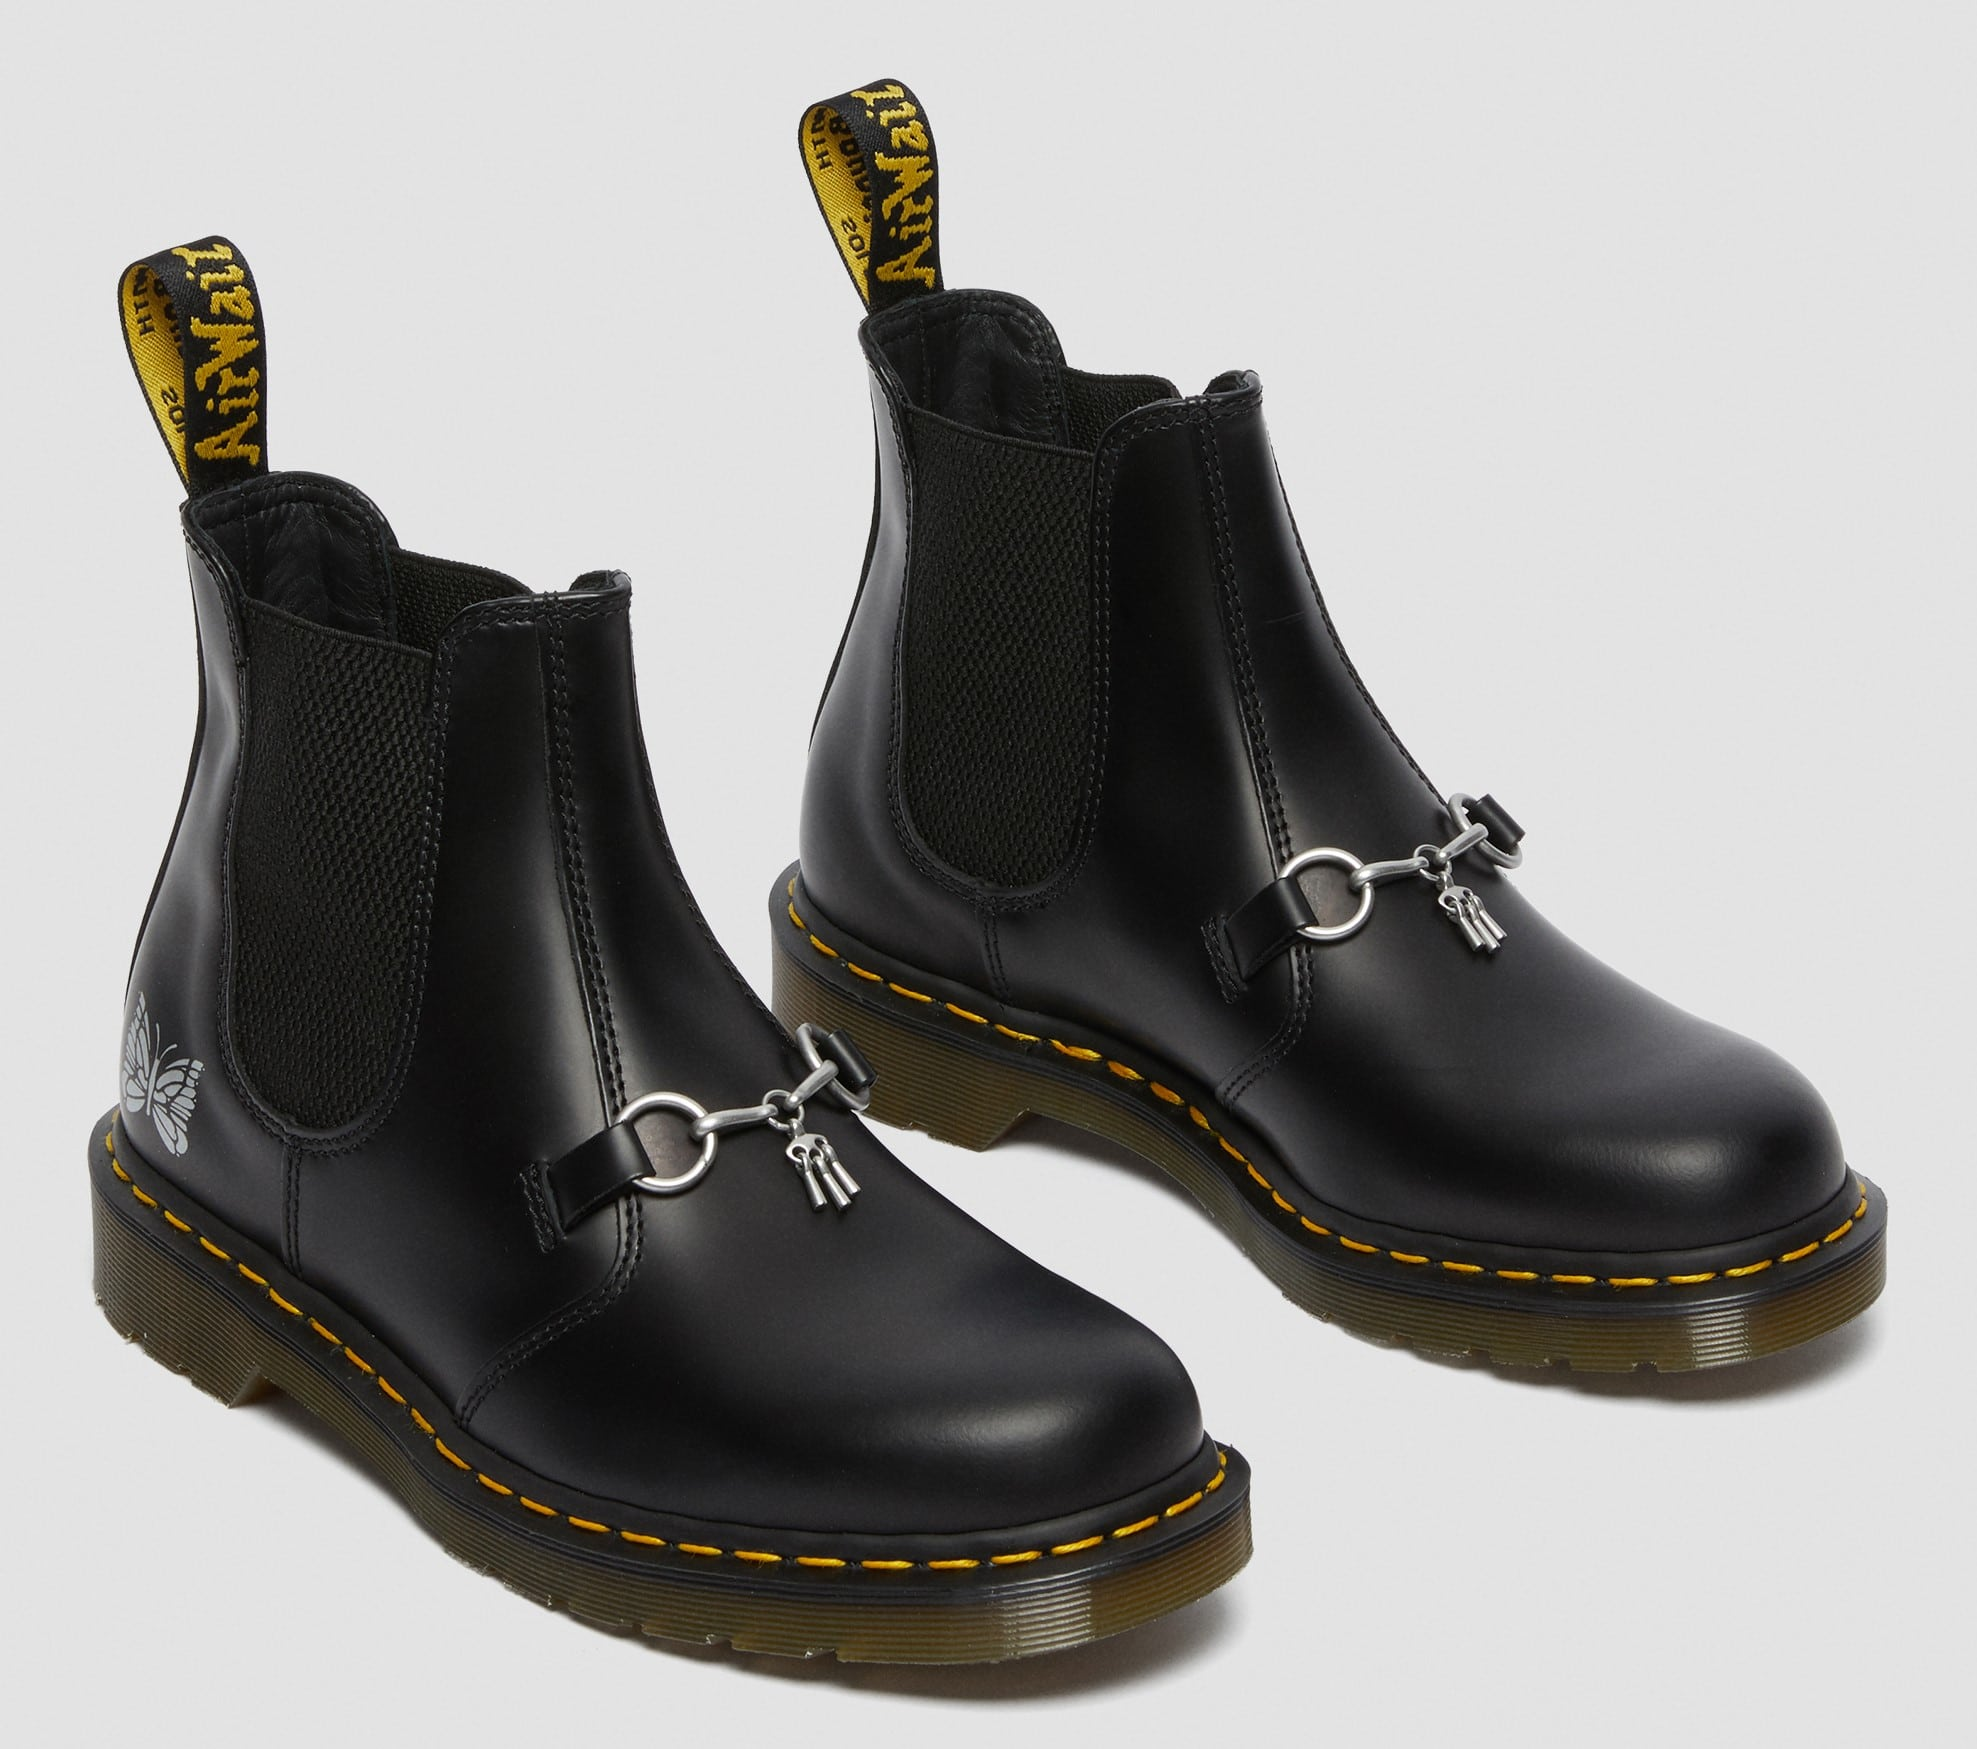 Dr. Martens Chelsea Boot gets an old-school Americana revamp from Needles 14